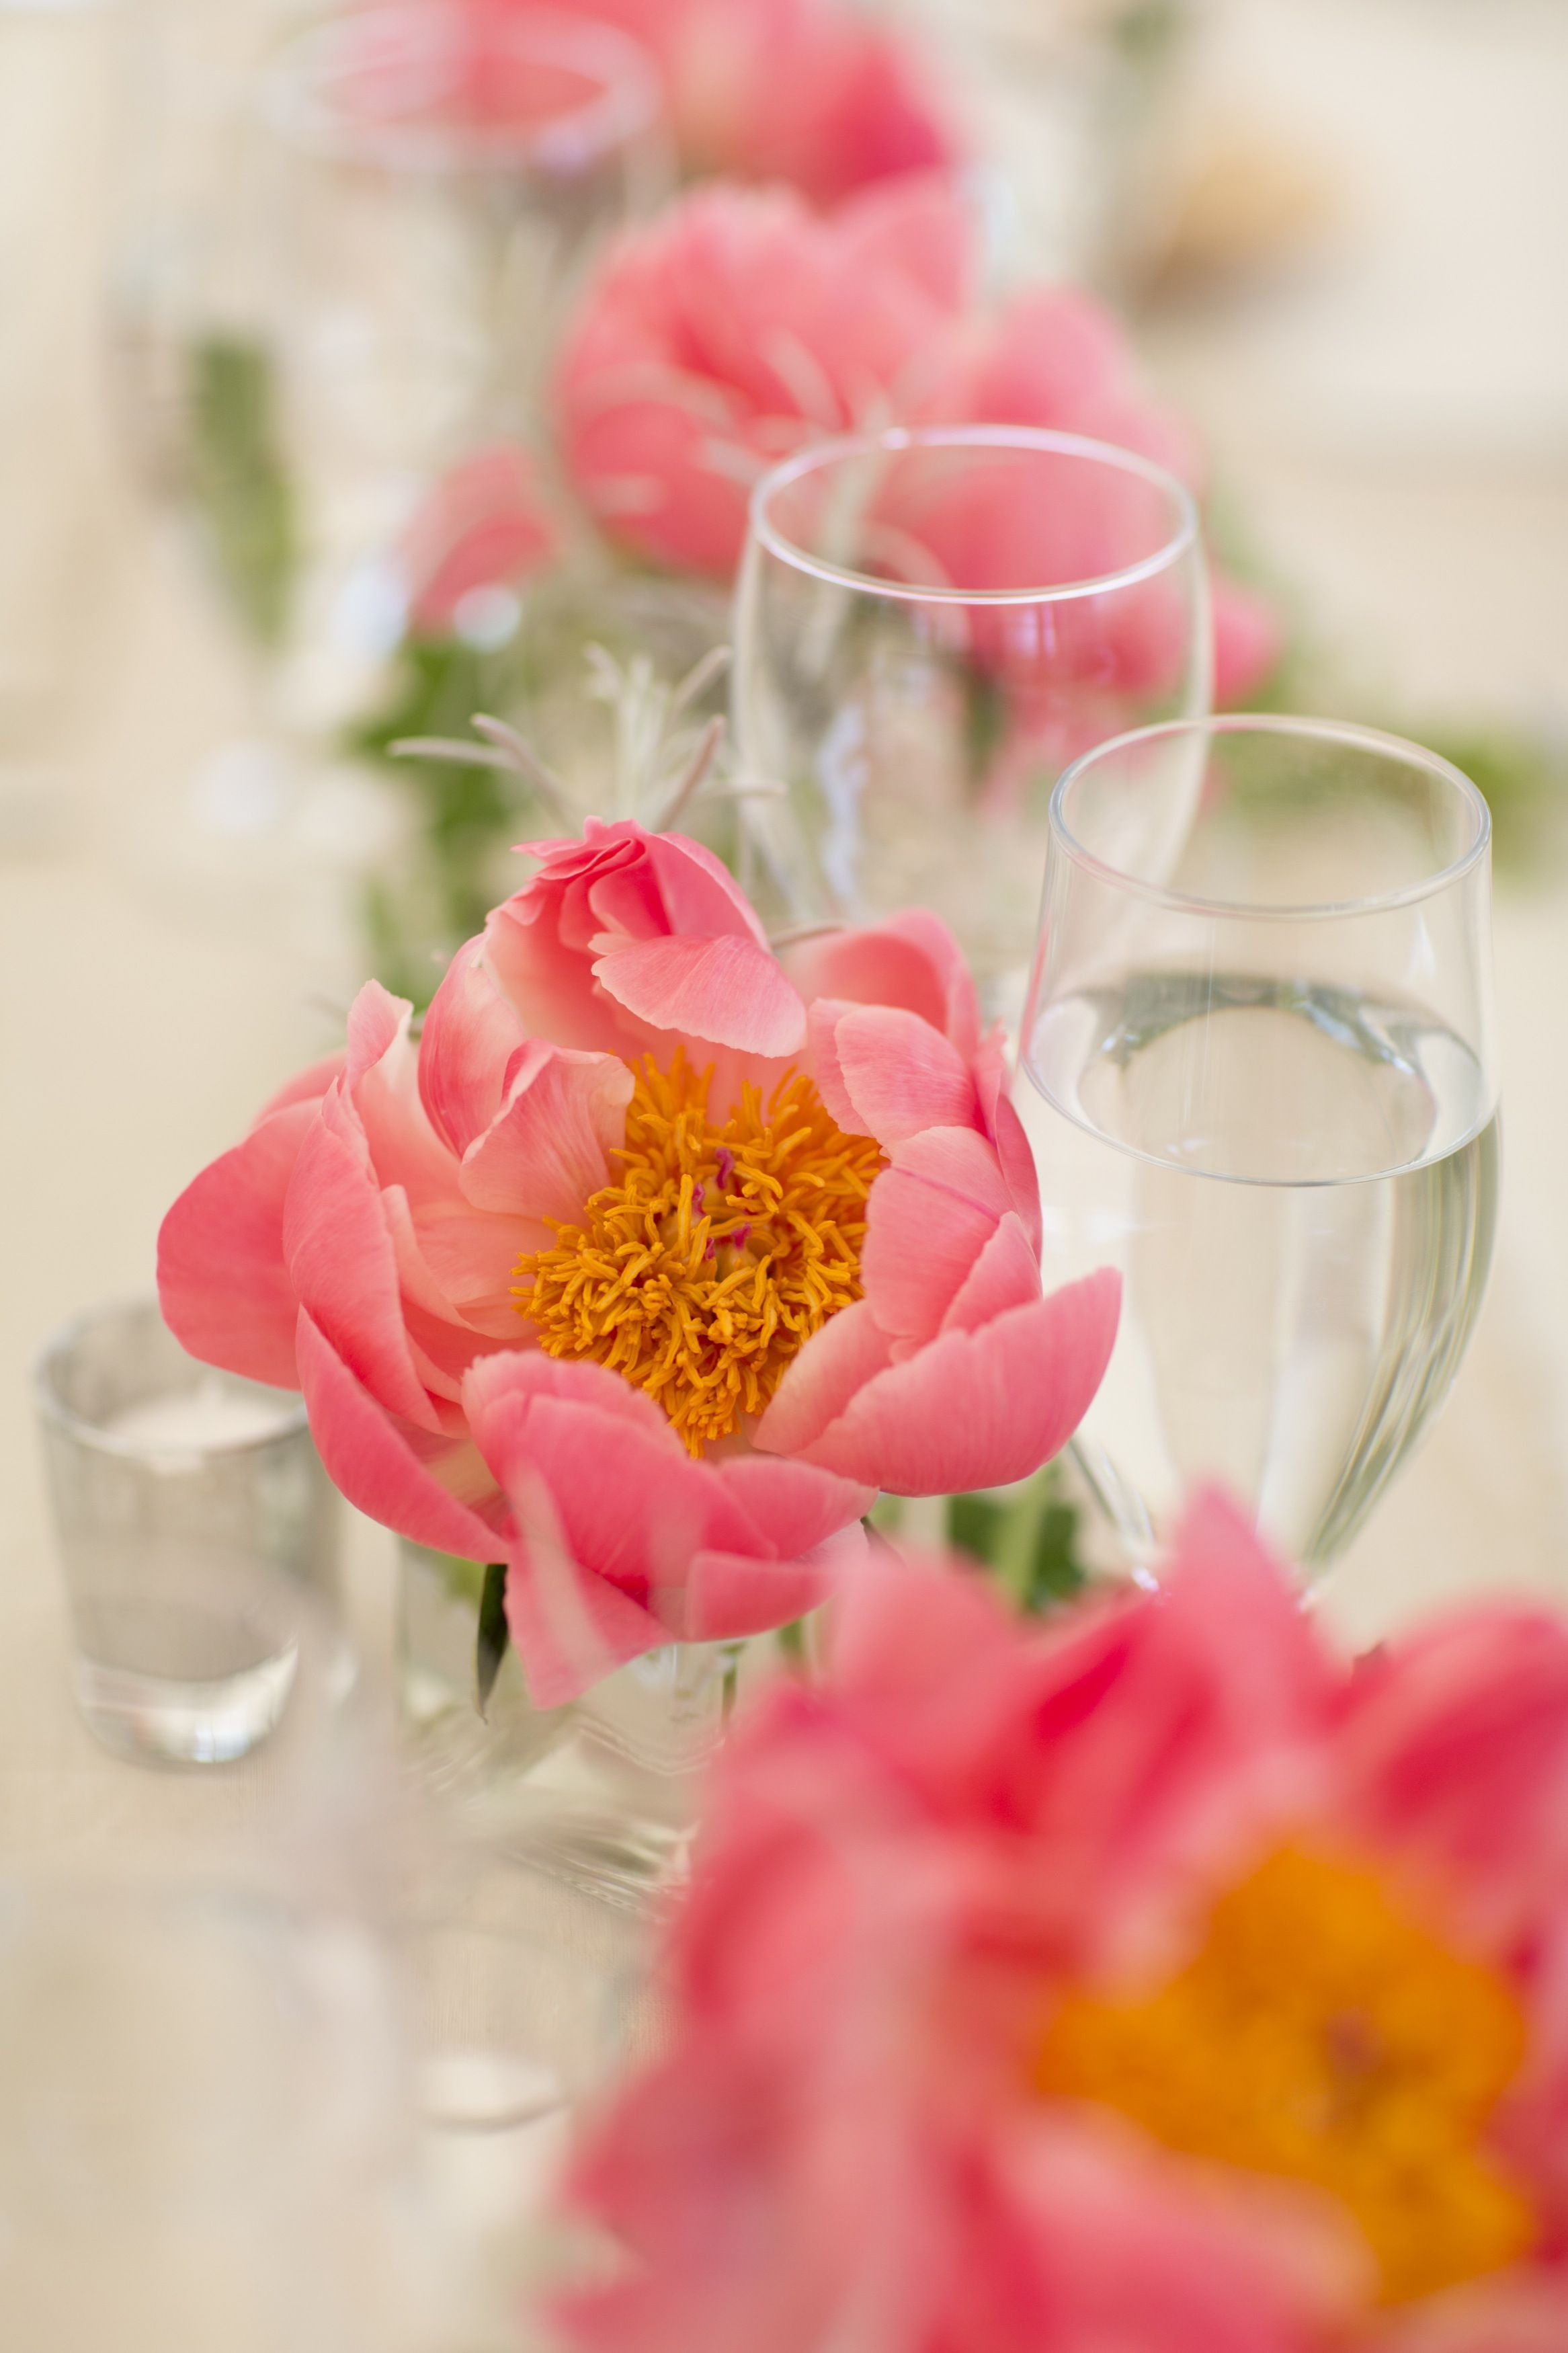 How much does wedding catering cost? Wedding catering